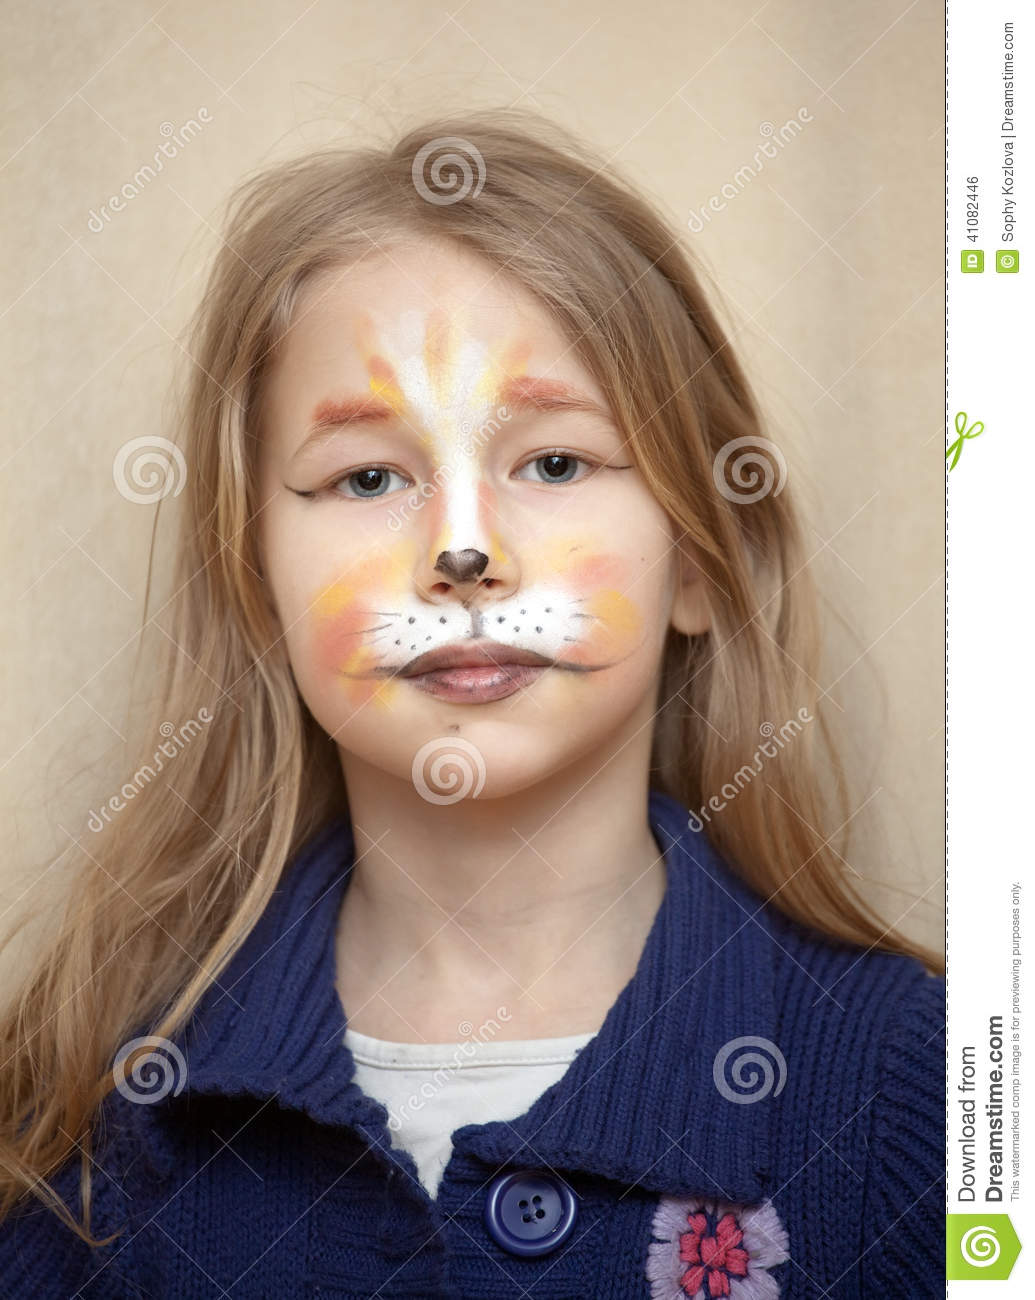 portrait de petite fille avec le maquillage de peinture de chat photo stock image 41082446. Black Bedroom Furniture Sets. Home Design Ideas